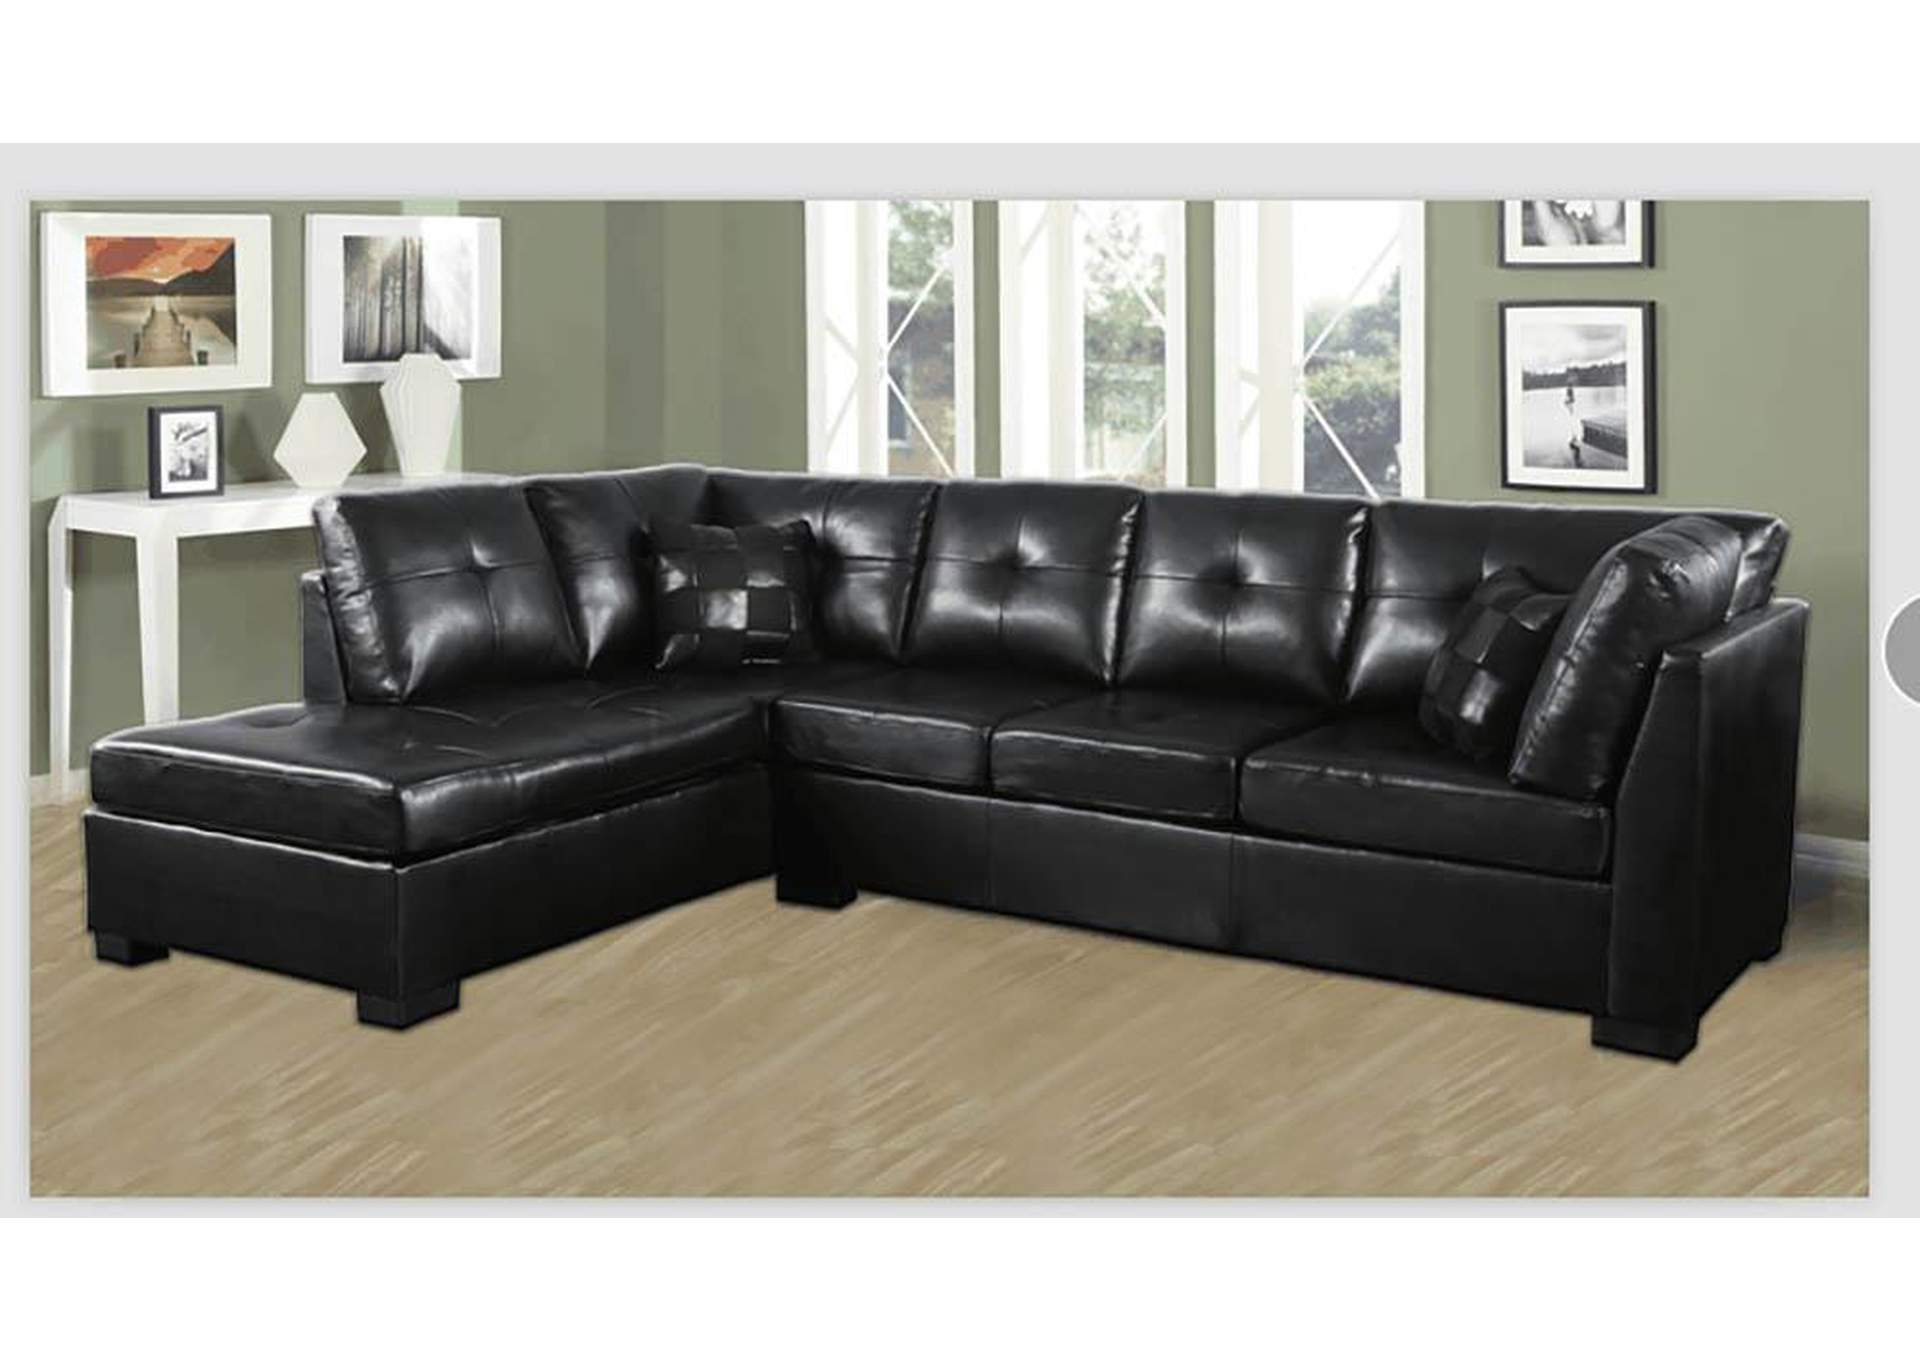 Darie Black Sectional,Coaster Furniture